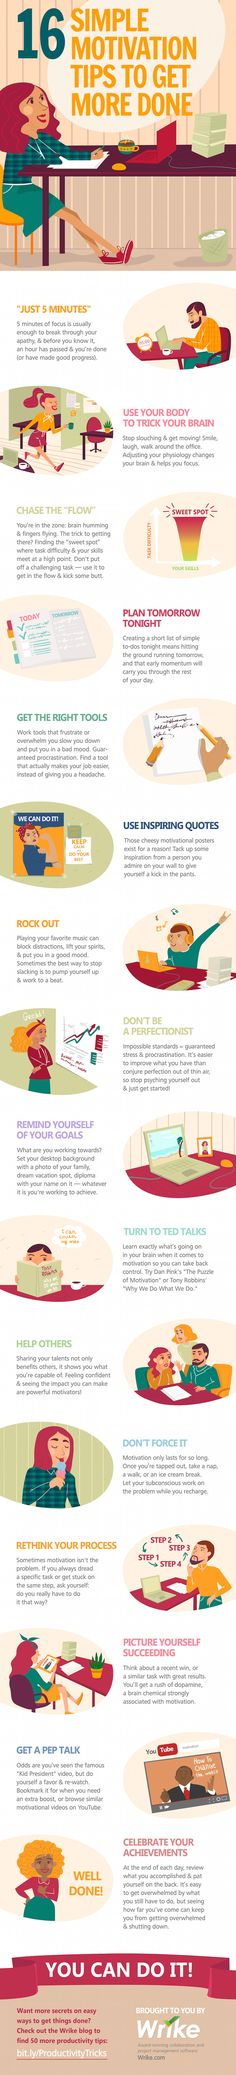 Productivity Tips for Entrepreneurs: 16 Ways to Get More Done #Infographic #Business #Startup